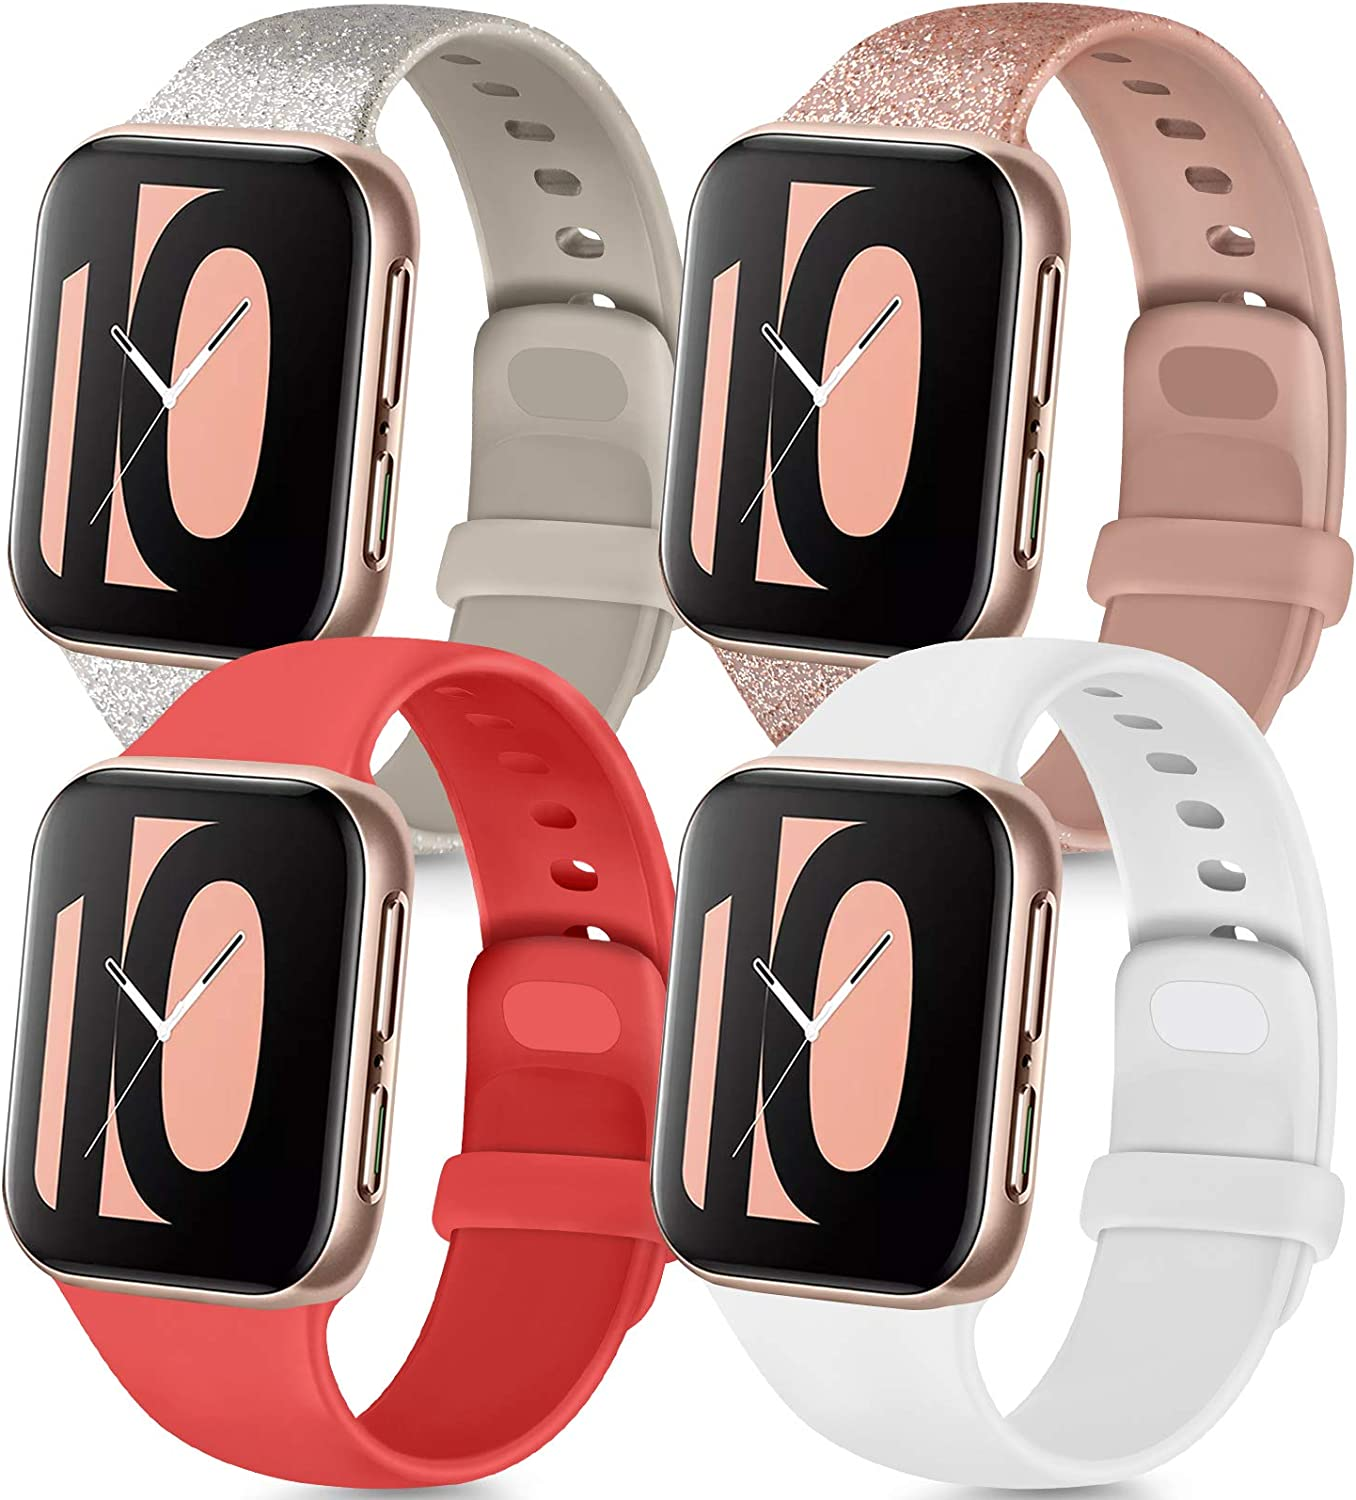 Tobfit 4 Pack Compatible with Apple Watch Band 38mm 42mm 40mm 44mm, Soft Silicone Replacement Band Compatible with iWatch Series 6 5 4 3 SE (Glitter Rose/Glitter Silver/Red/White, 38mm/40mm S/M)